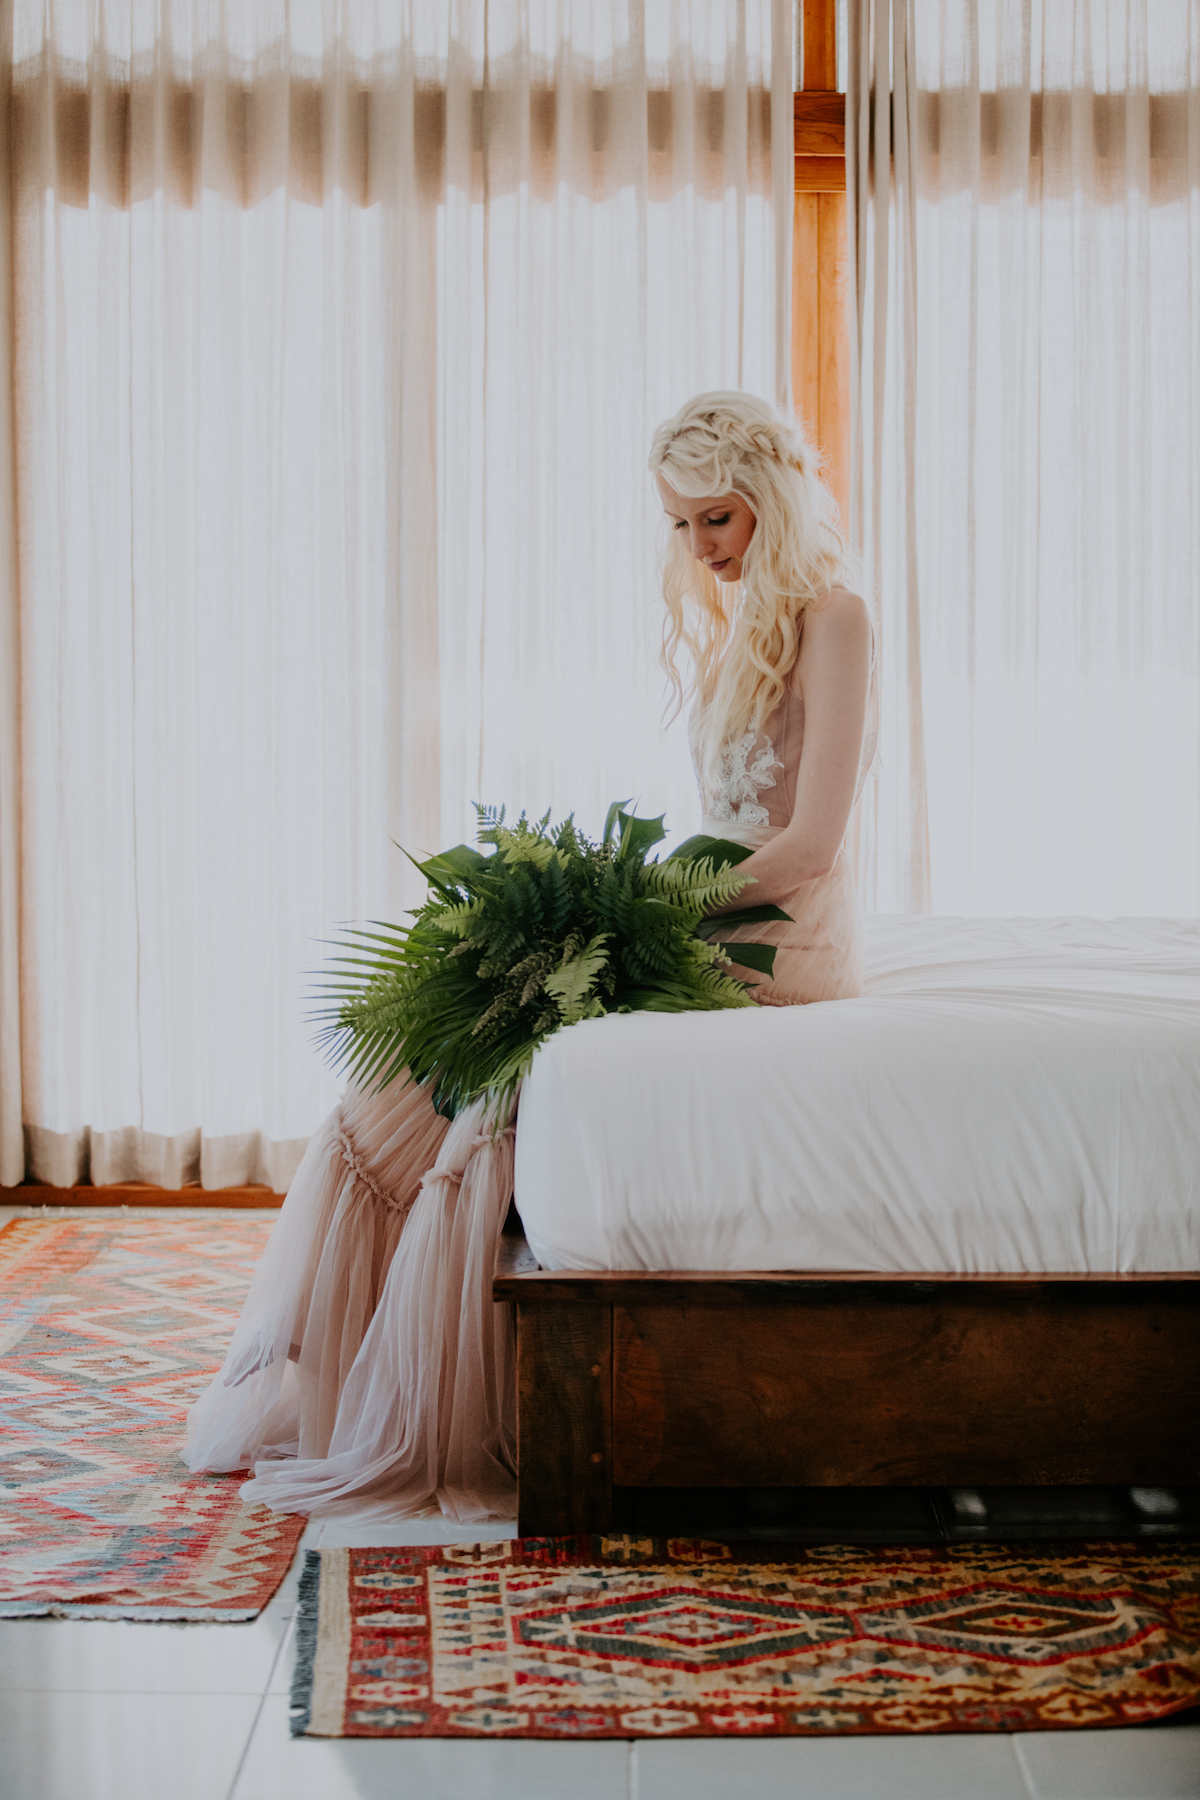 Bride sitting on bed in contemplation